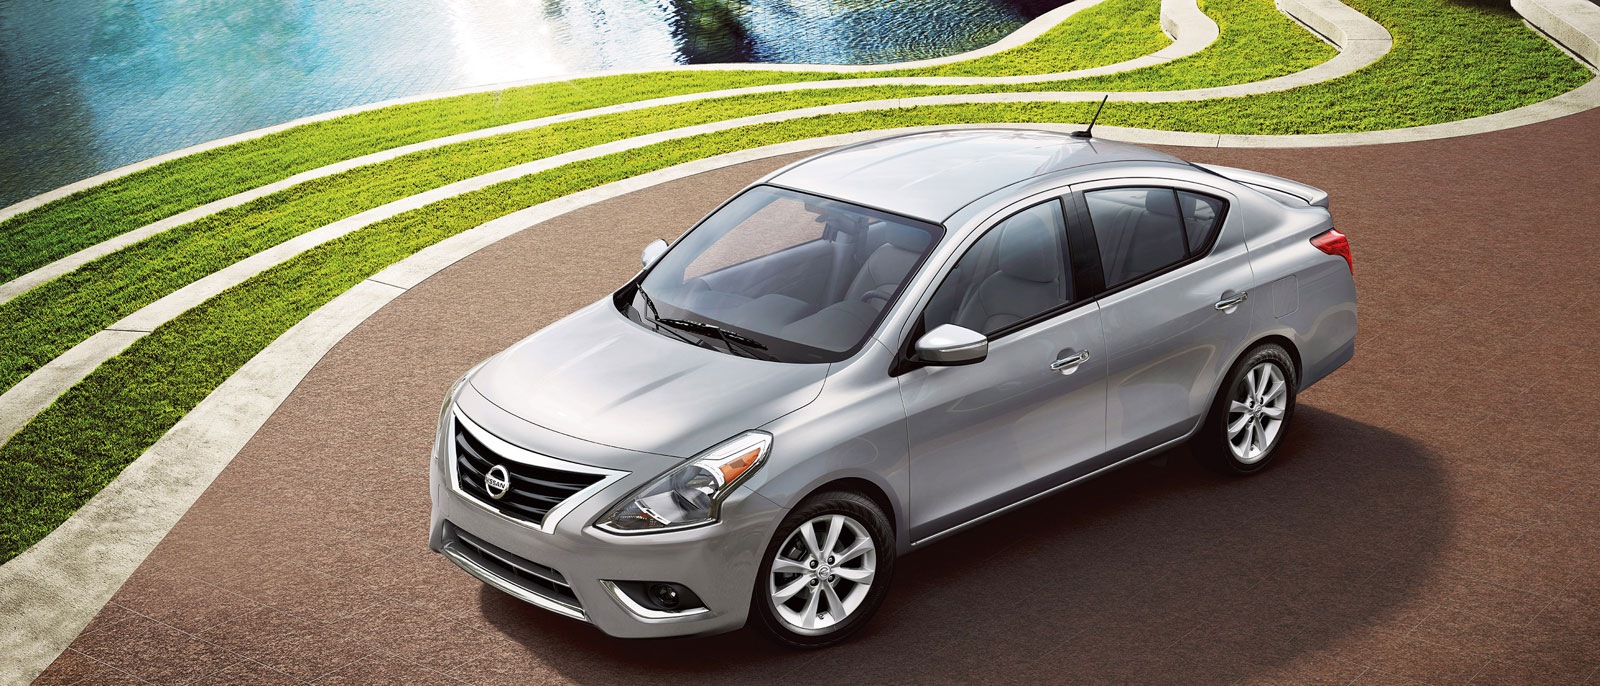 2015 nissan versa sedan gastonia charlotte gastonia nissan. Black Bedroom Furniture Sets. Home Design Ideas